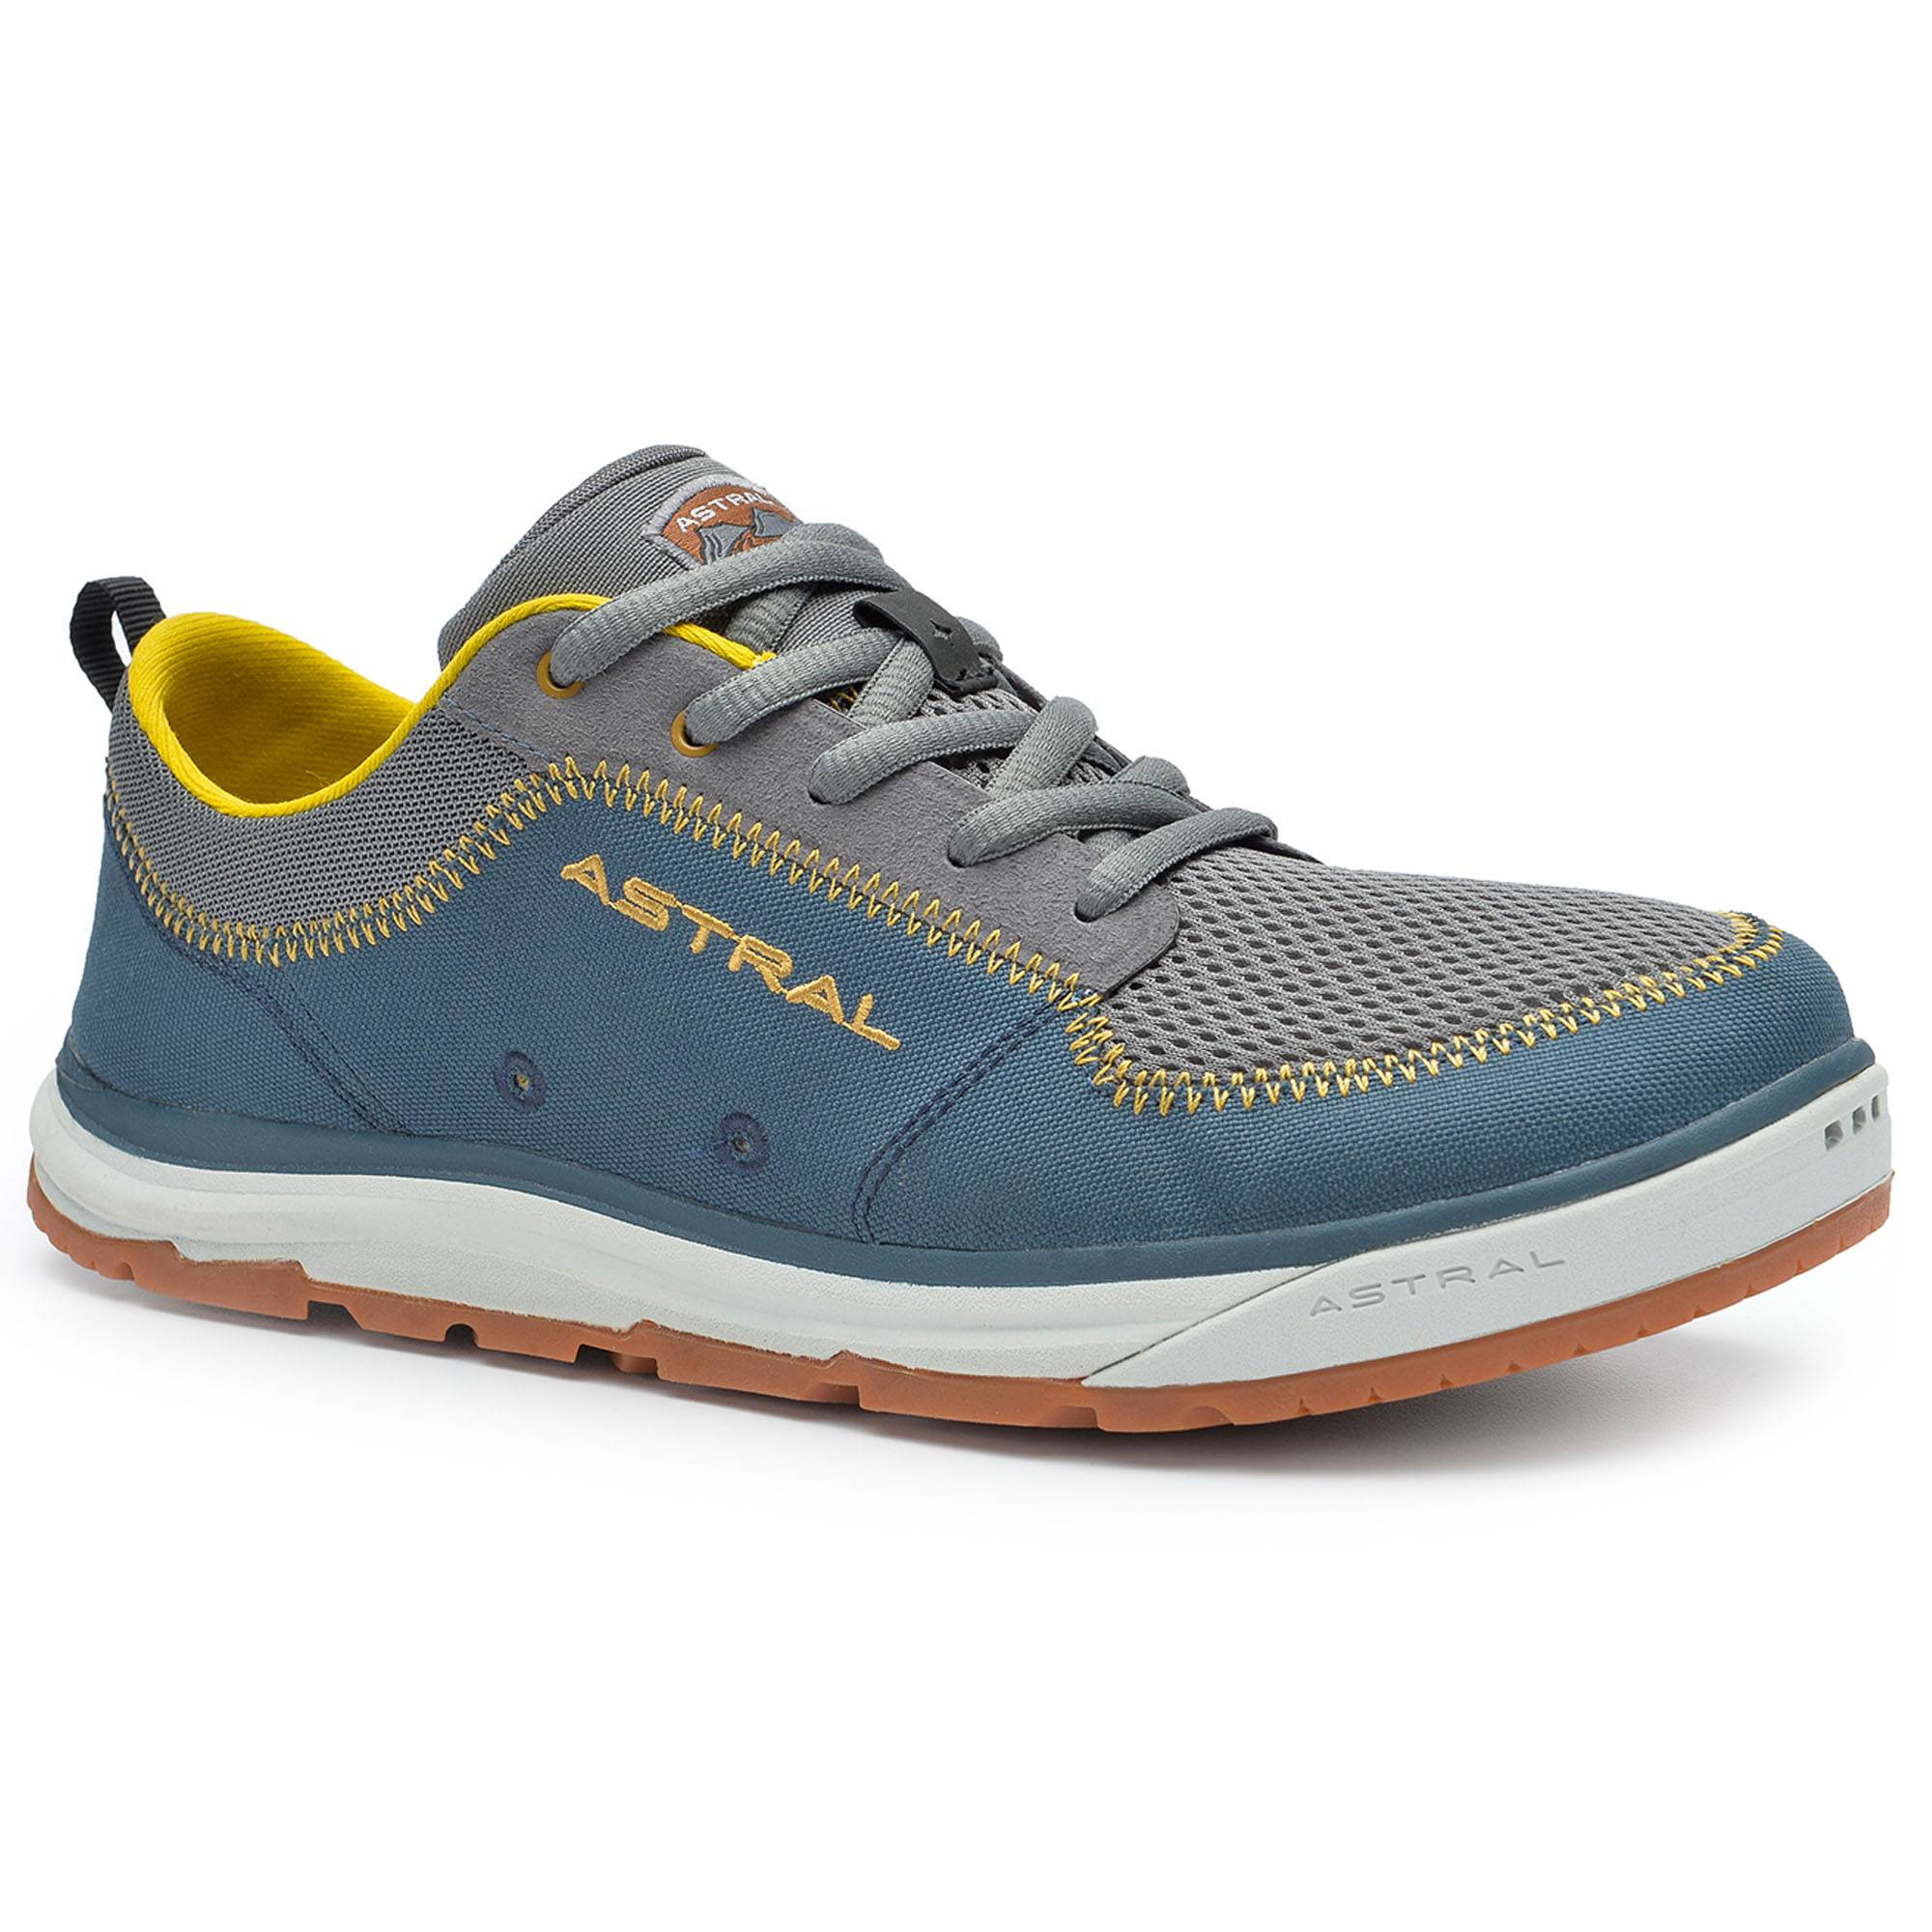 Astral Men's Brewer 2.0 Water Shoes  - Storm Navy - Size: 12